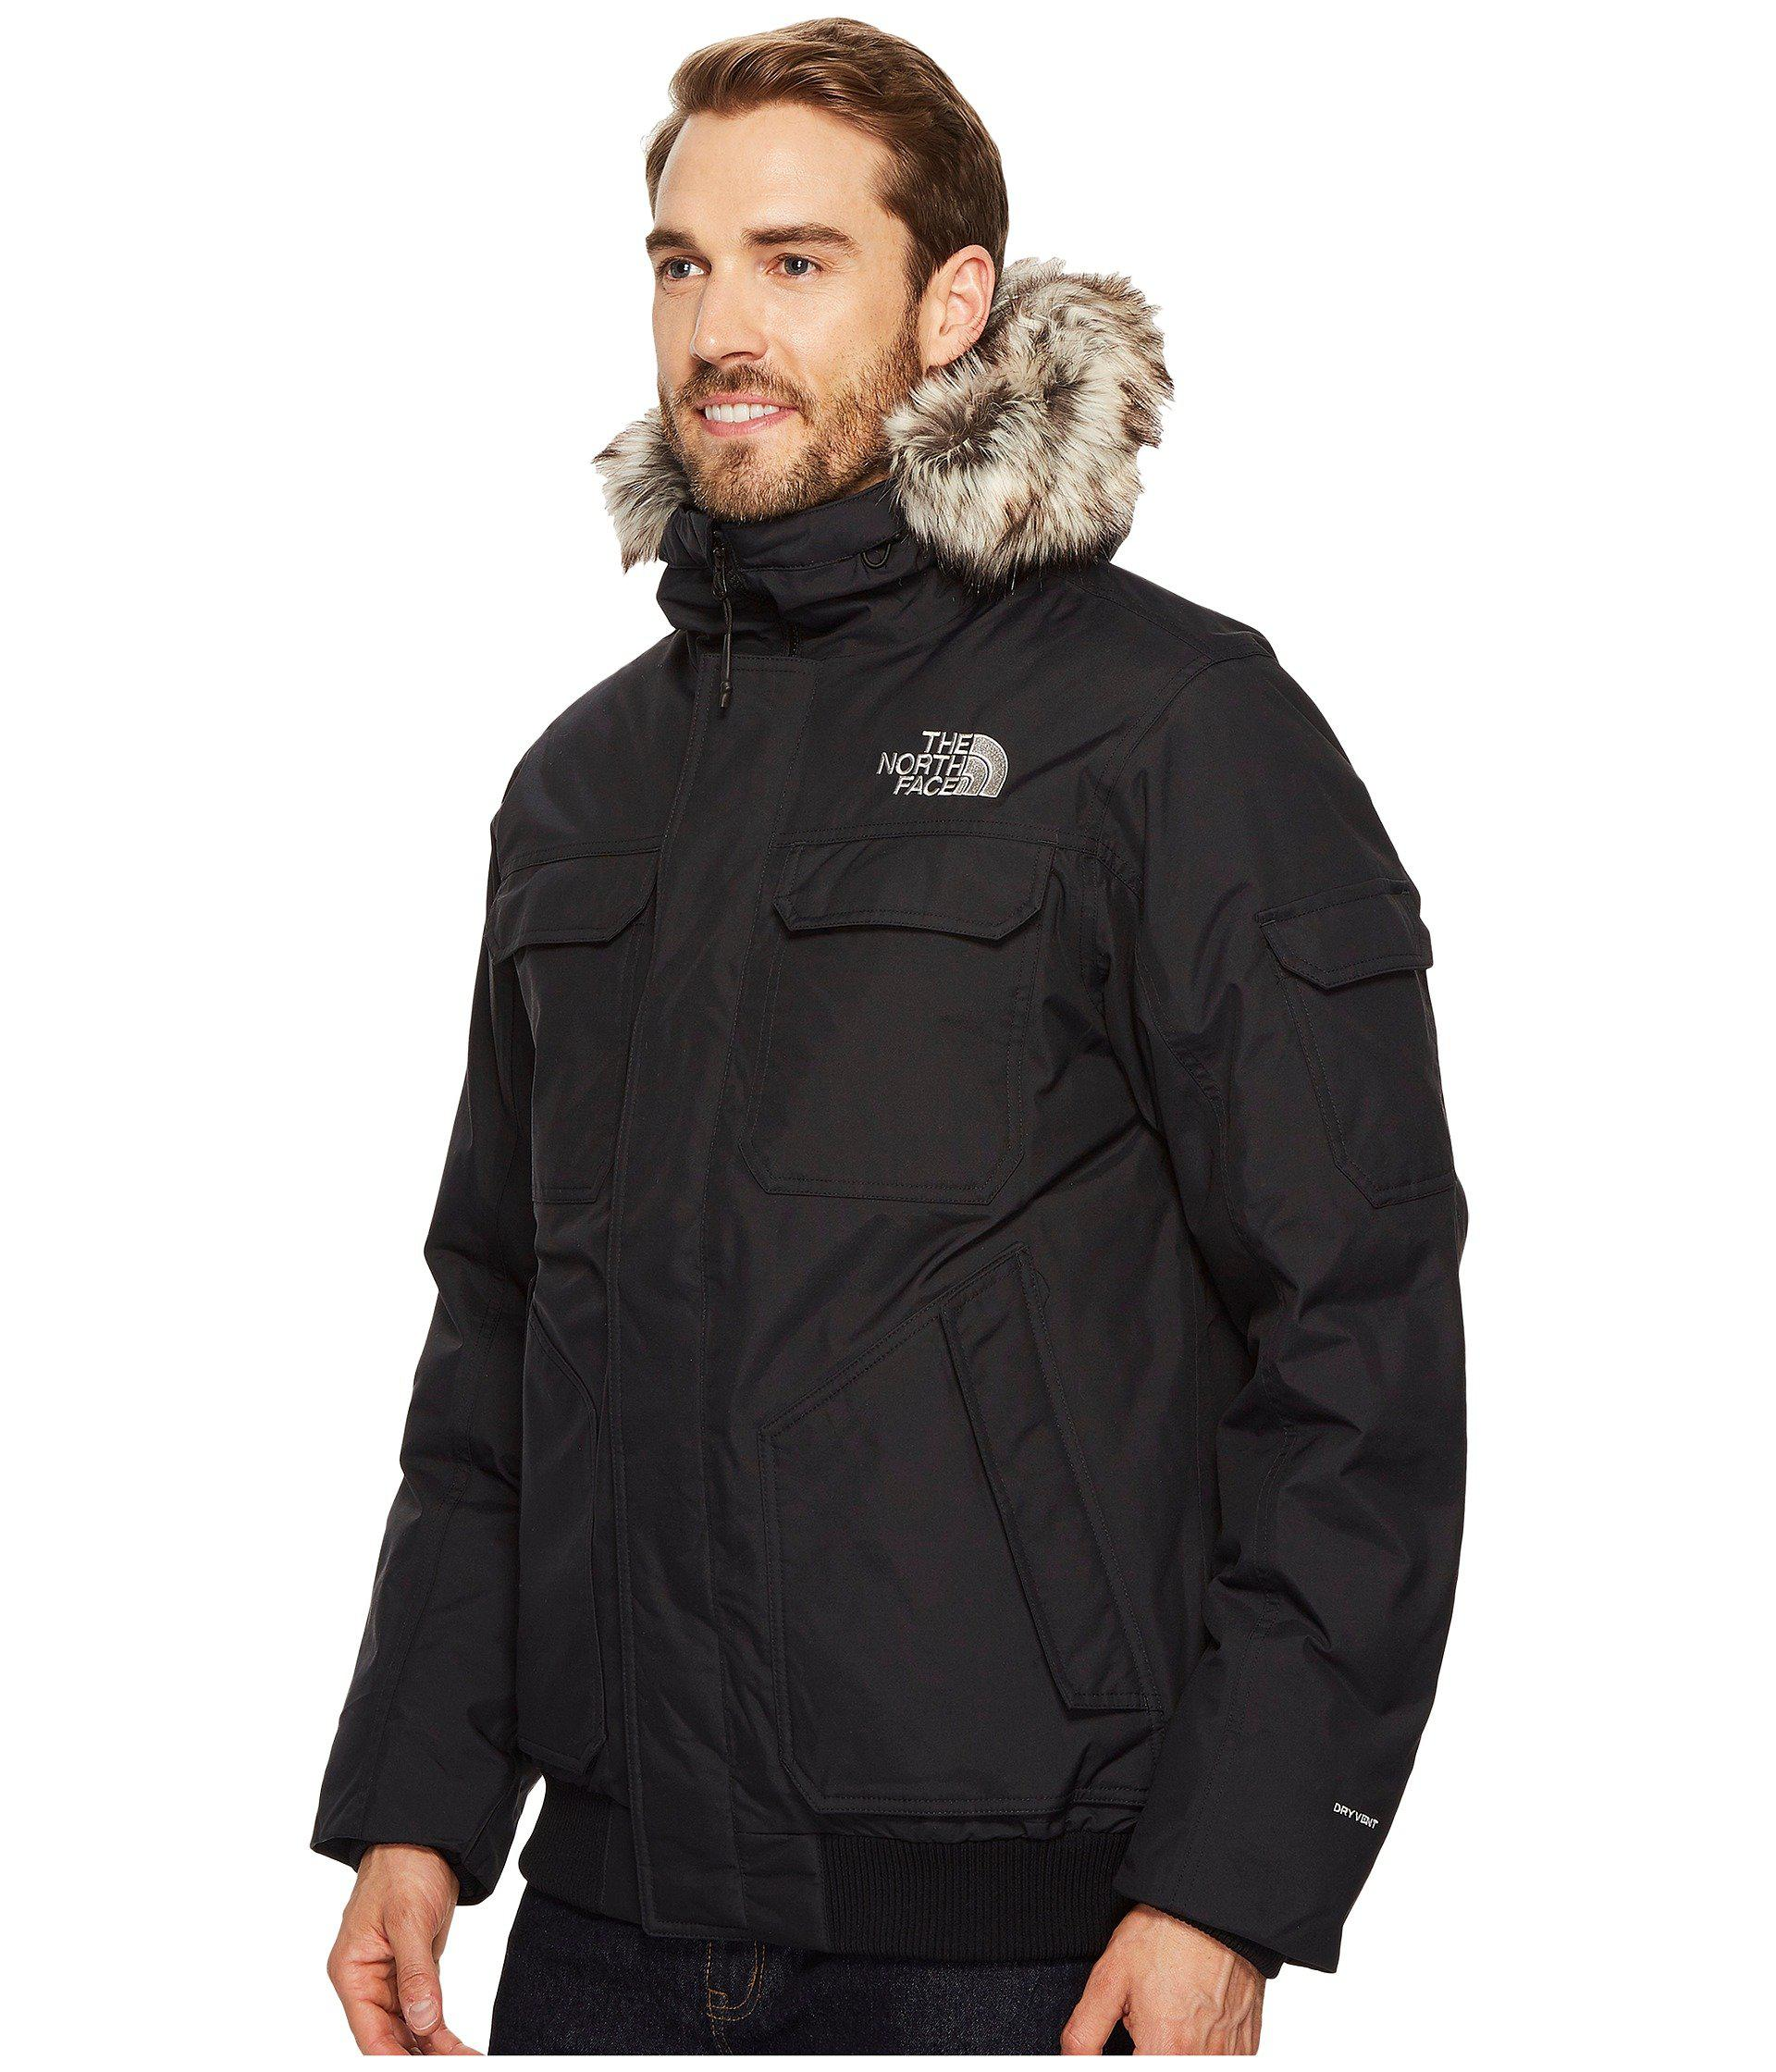 Lyst - The North Face Gotham Jacket Iii (tumbleweed Green new Taupe Green  Macrofleck Print) Men s Coat in Black for Men 0edf00a80